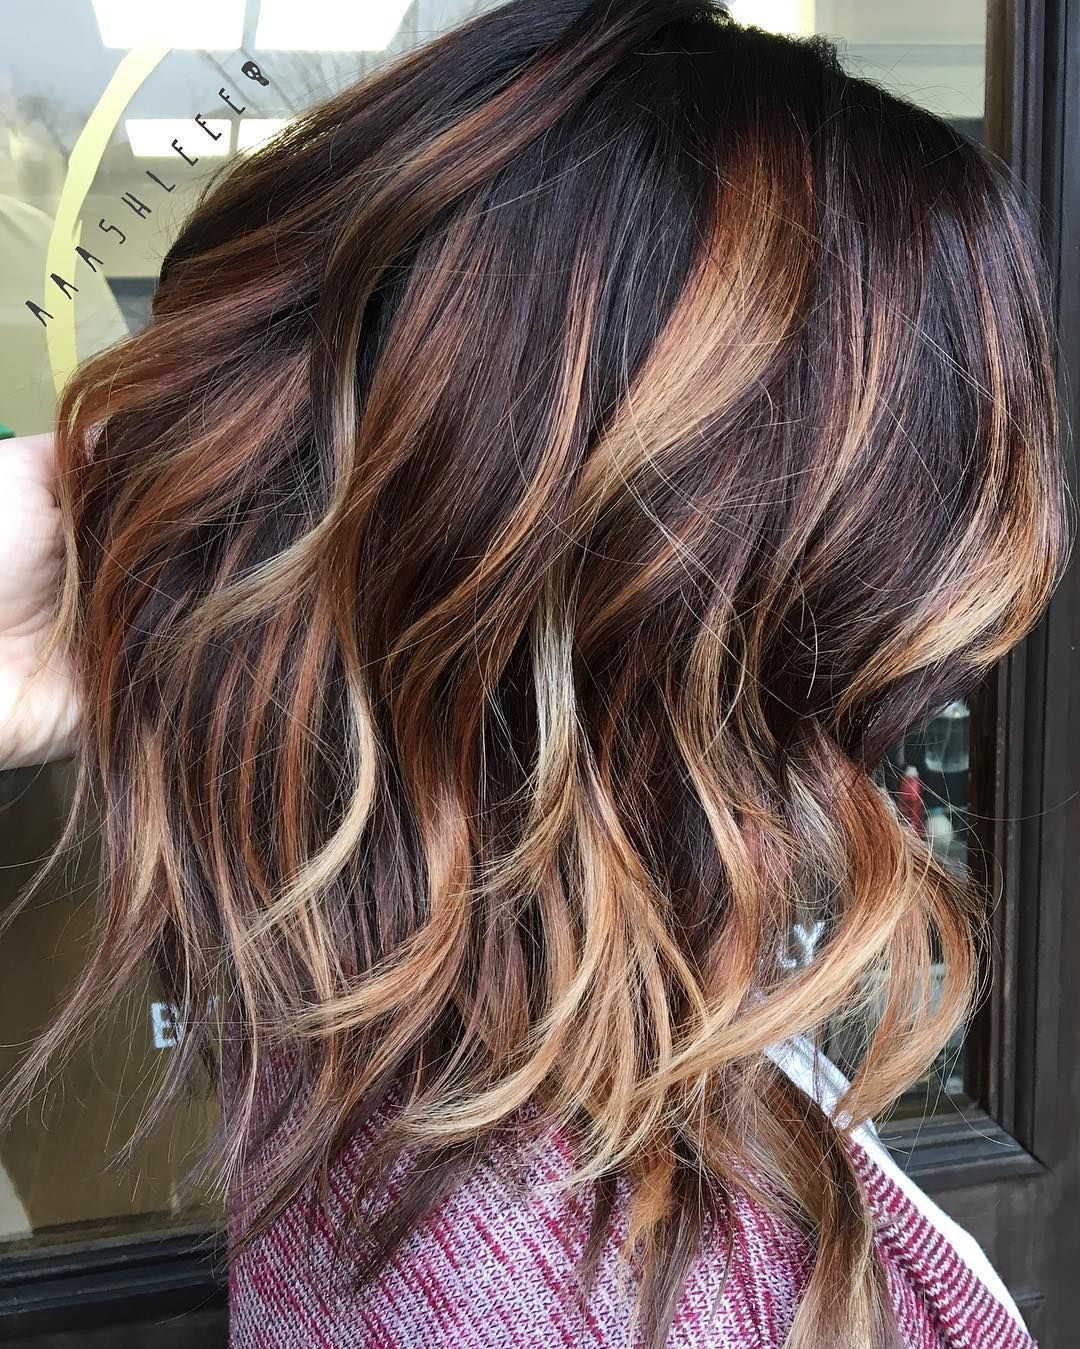 50 HOTTEST Balayage Hair Ideas to Try in 2020 - Ha